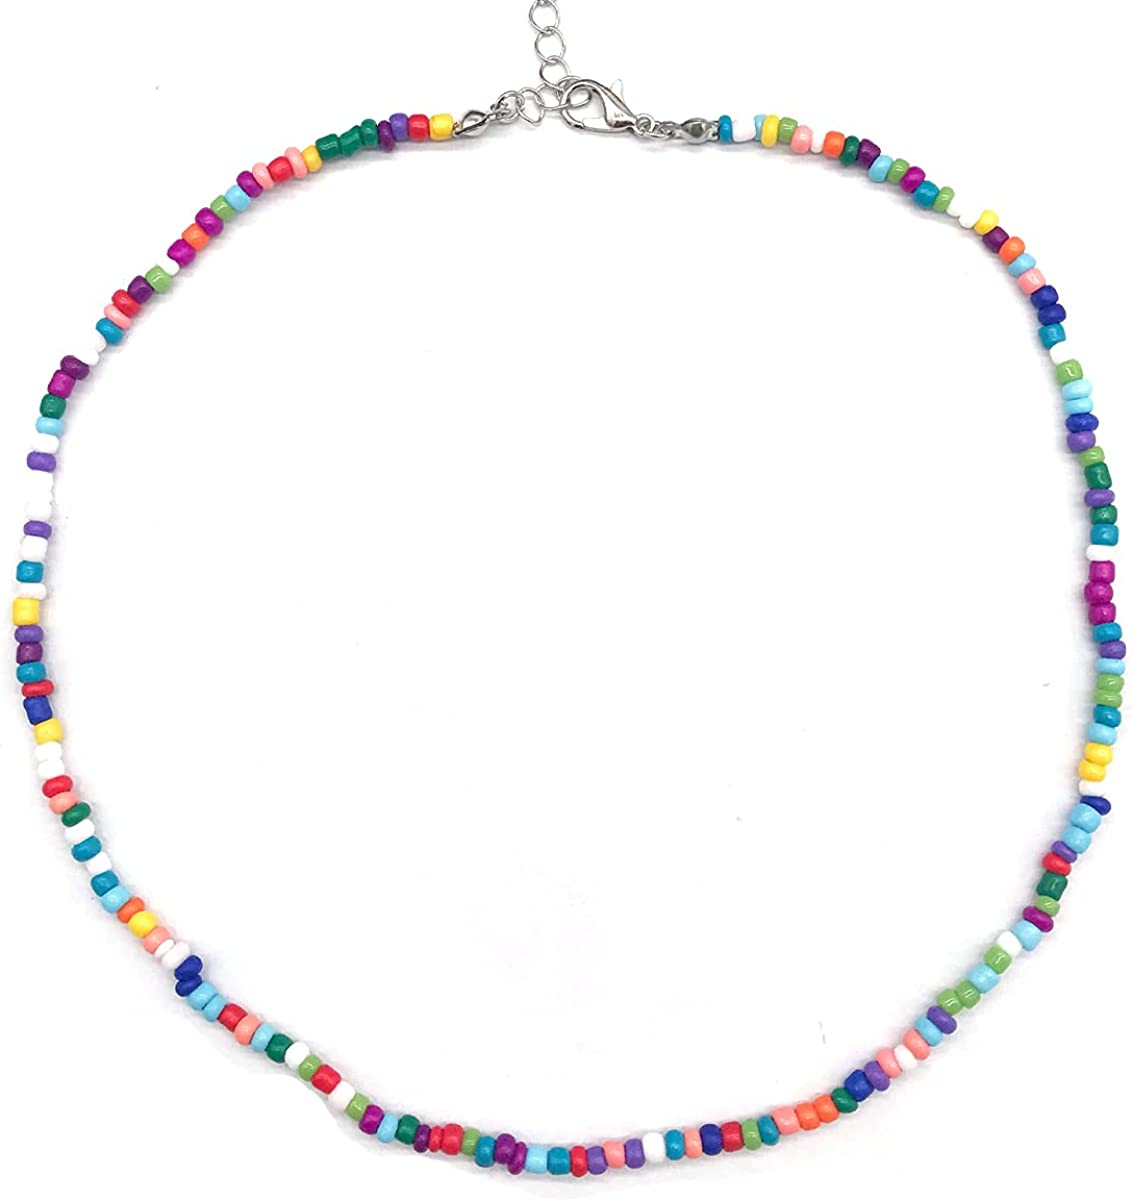 JEWPARK 1-5 PCS Boho Pearl Beaded Necklace Y2k Choker Necklace for Women Girls Colorful Seed Beaded Pearl Choker Smiley Face Irregular Pearl Choker Handmade BeadandPearlNecklaces